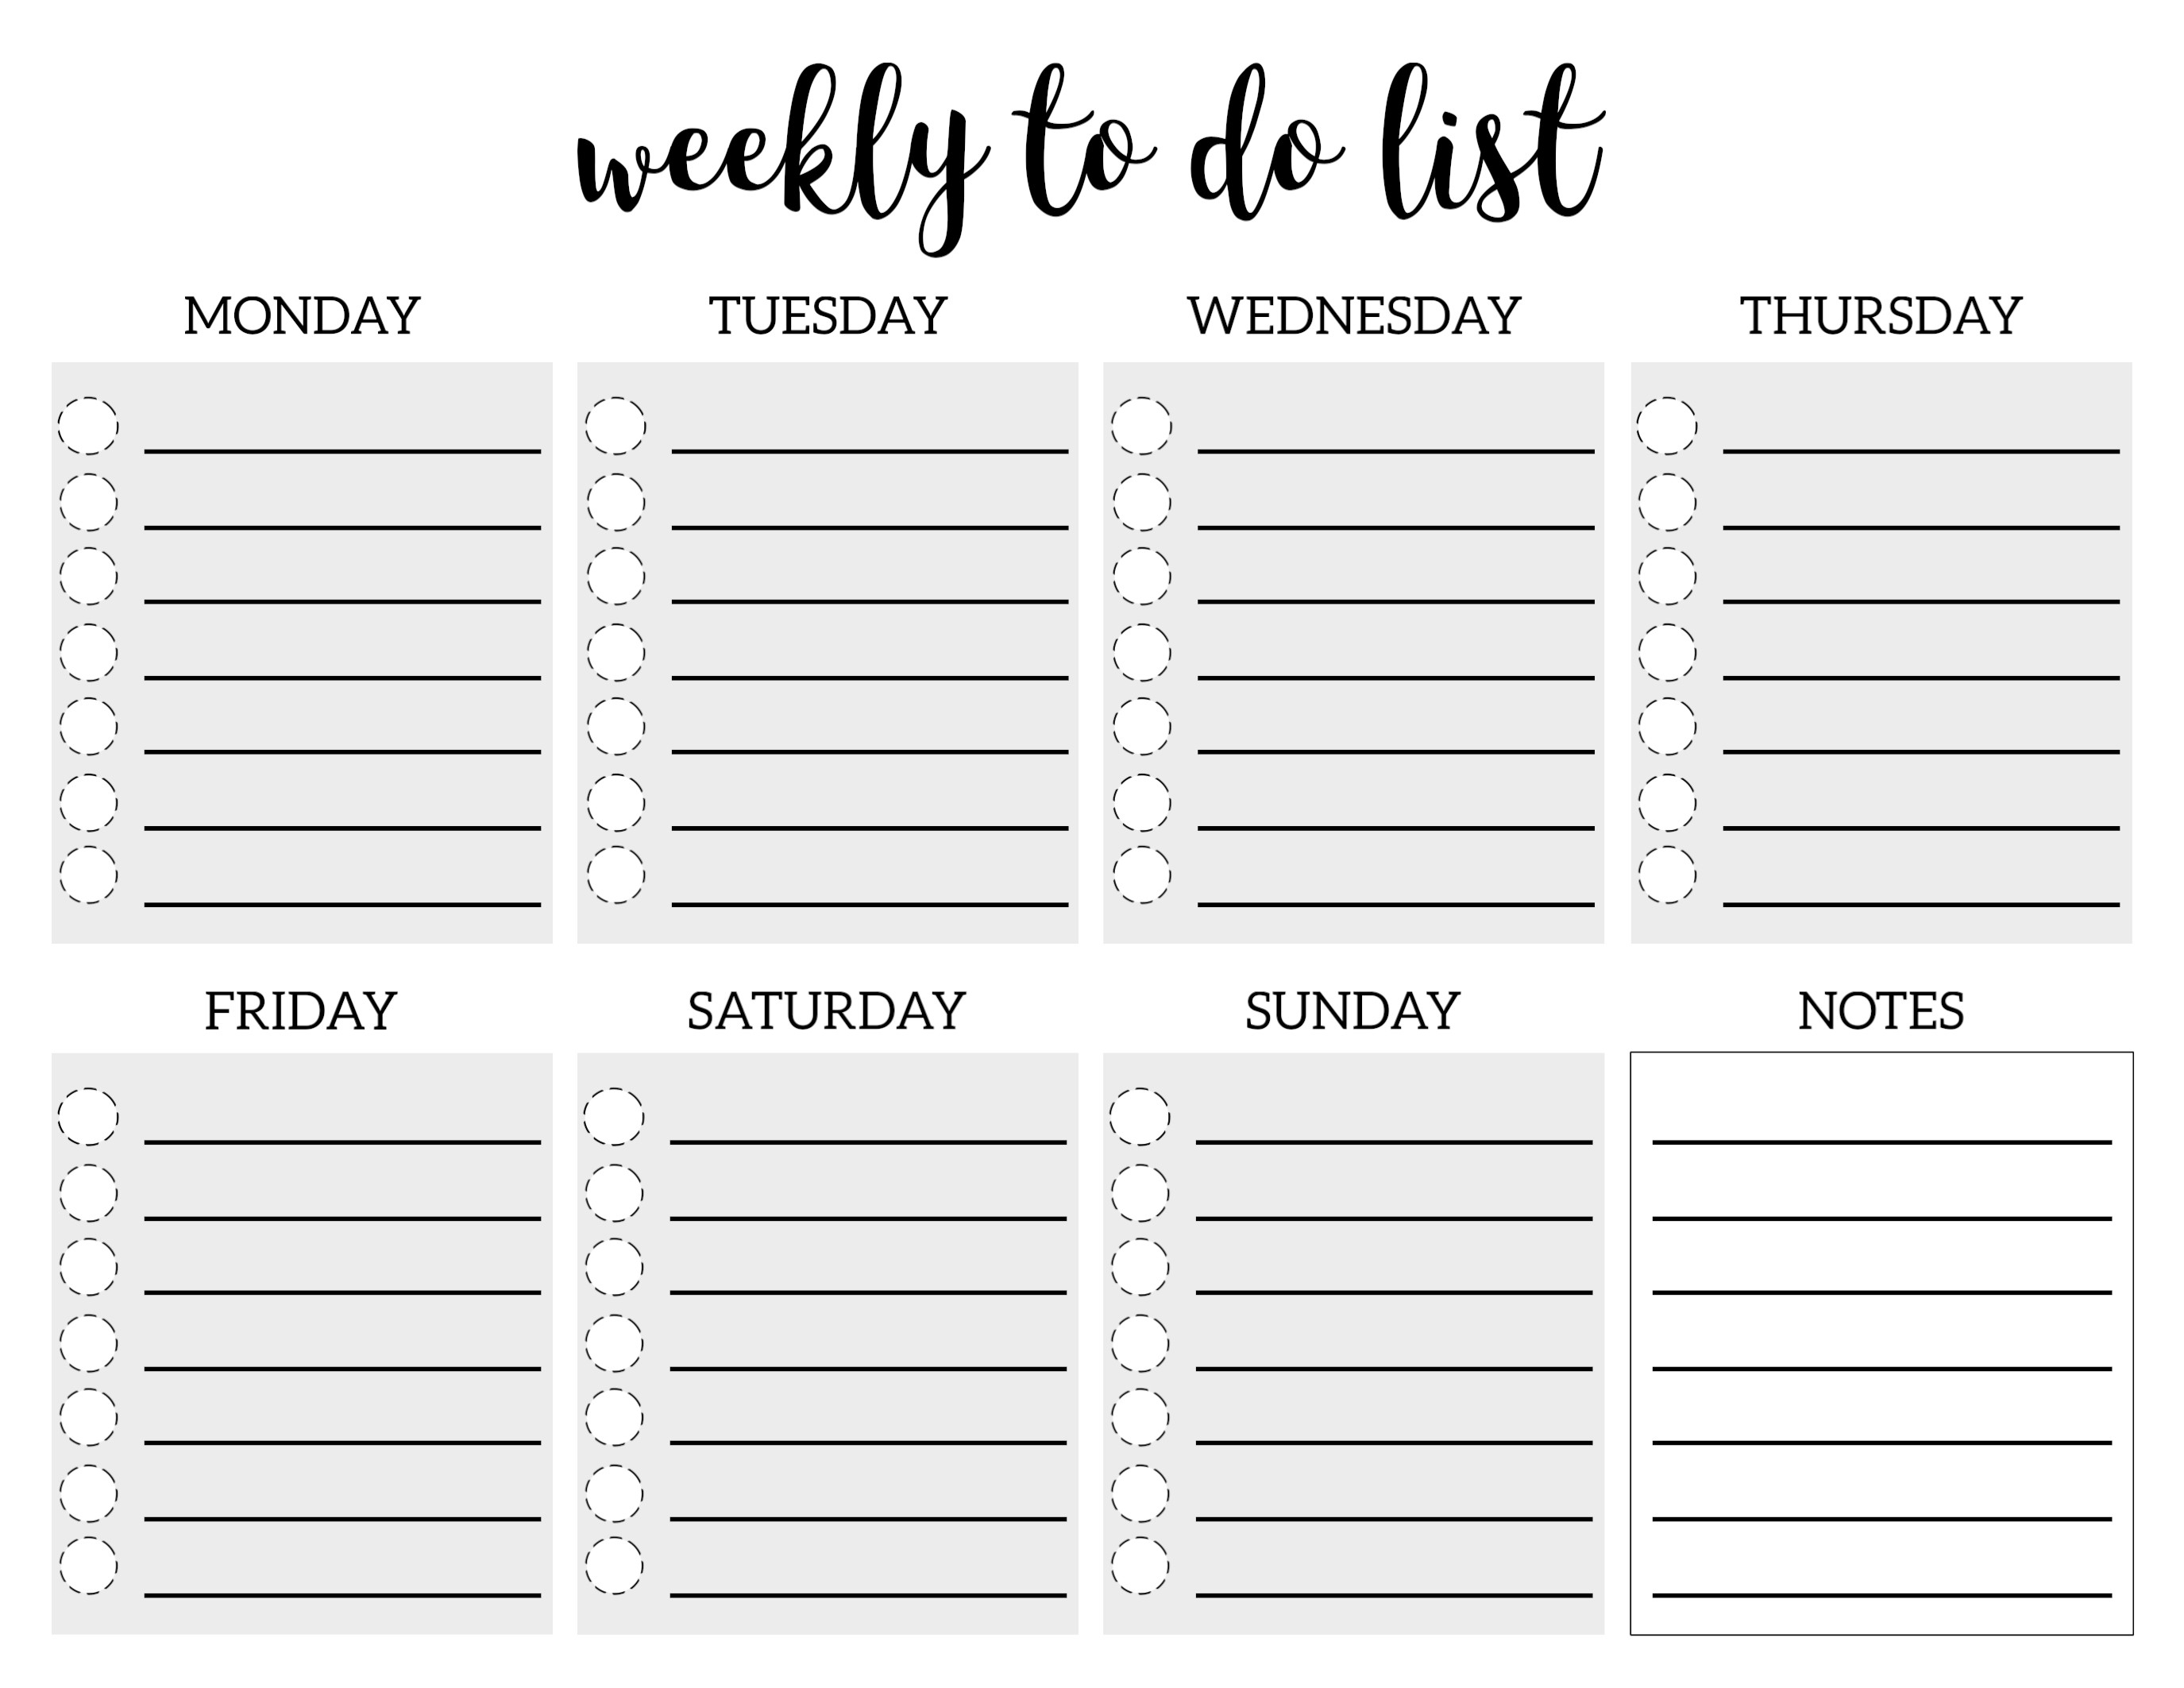 Weekly To Do List Printable Checklist Template - Paper Trail Design inside Weekly To Do List 20258